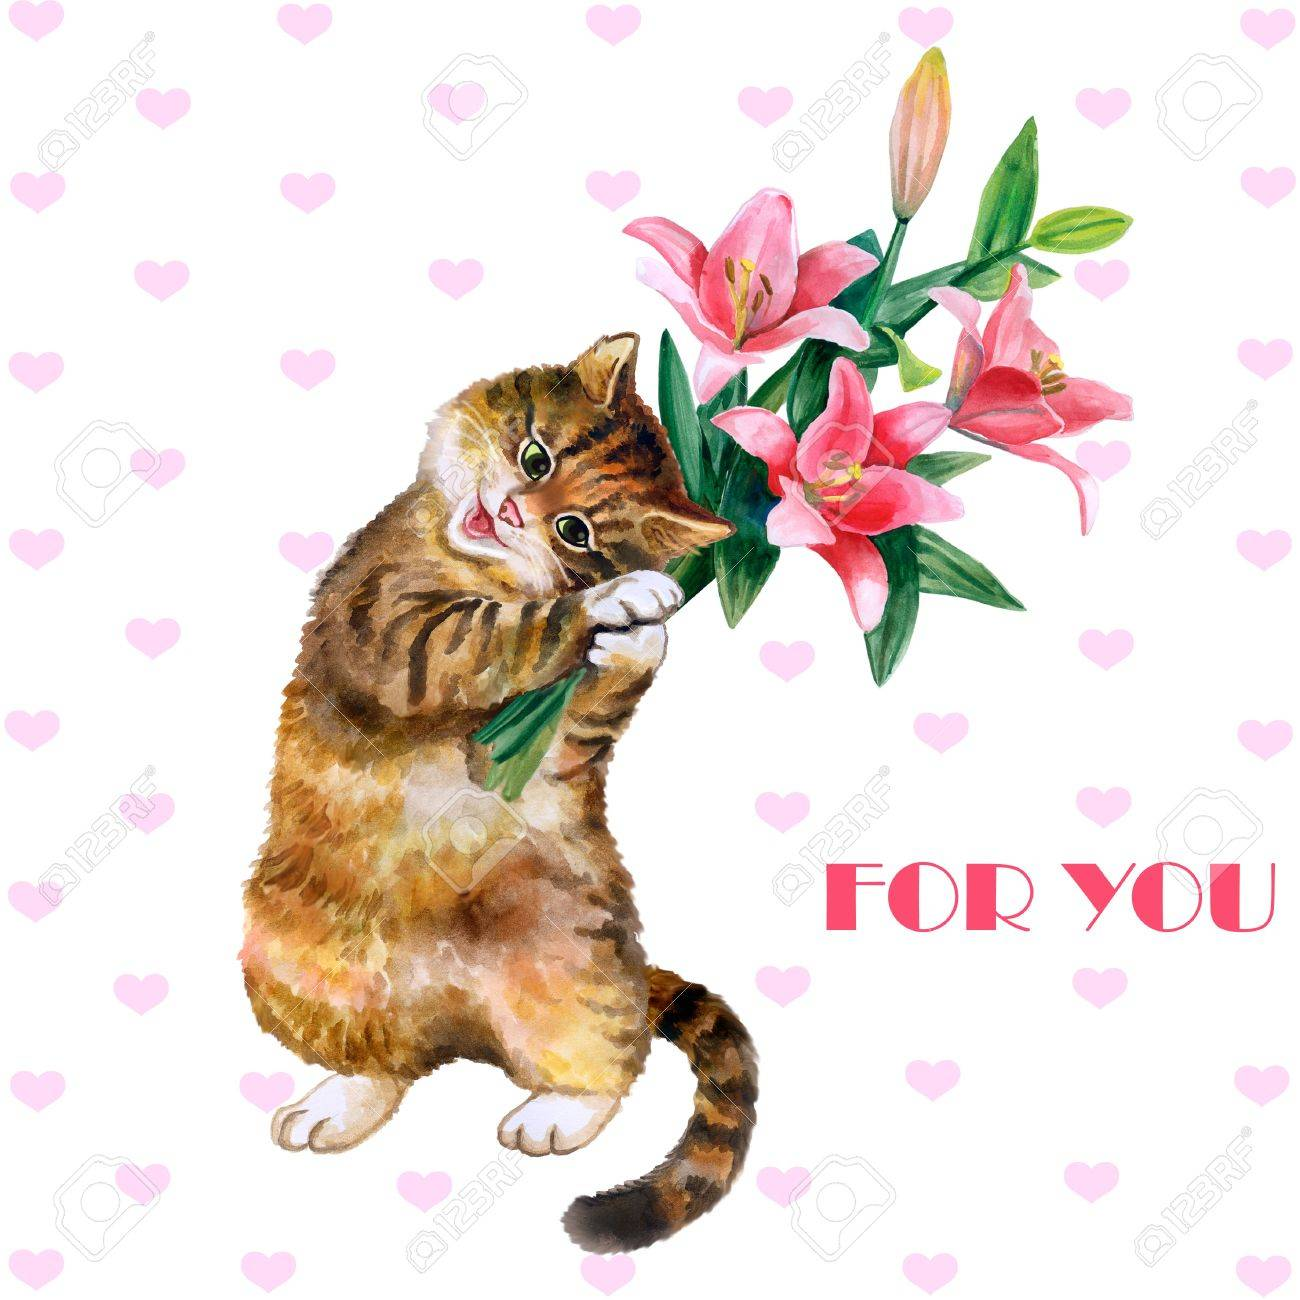 Cute Watercolor Greeting Card With Cat And Flowers Isolated On ...